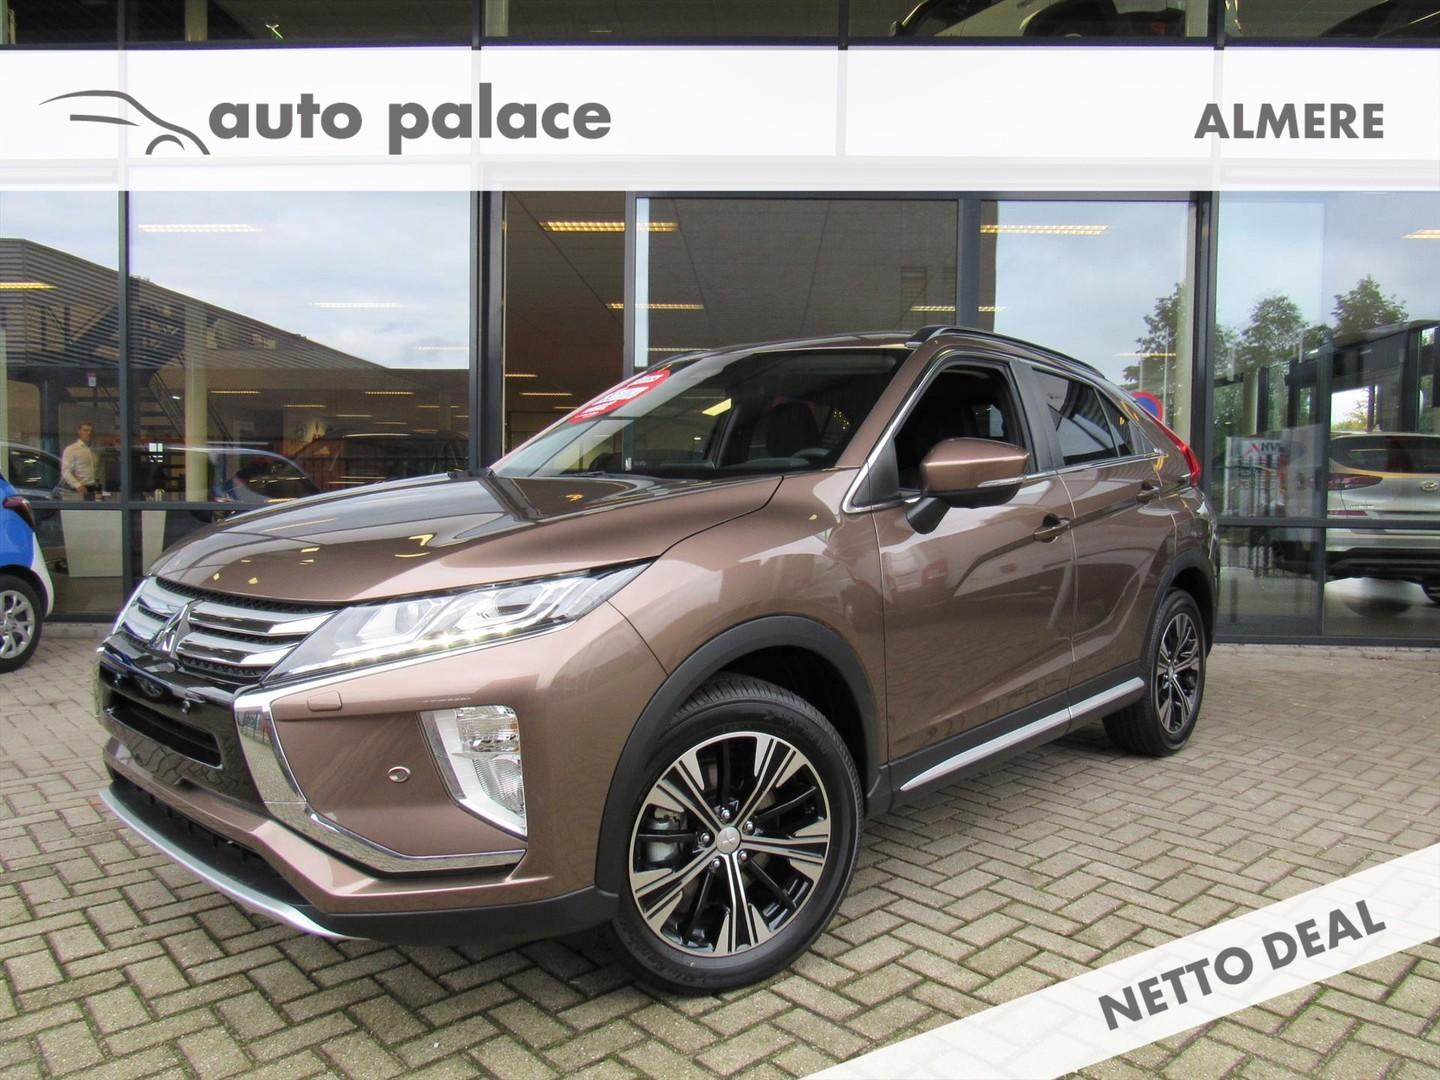 Mitsubishi Eclipse cross 1.5 di-t 163pk 2wd first edition rijklaar €29.945,-